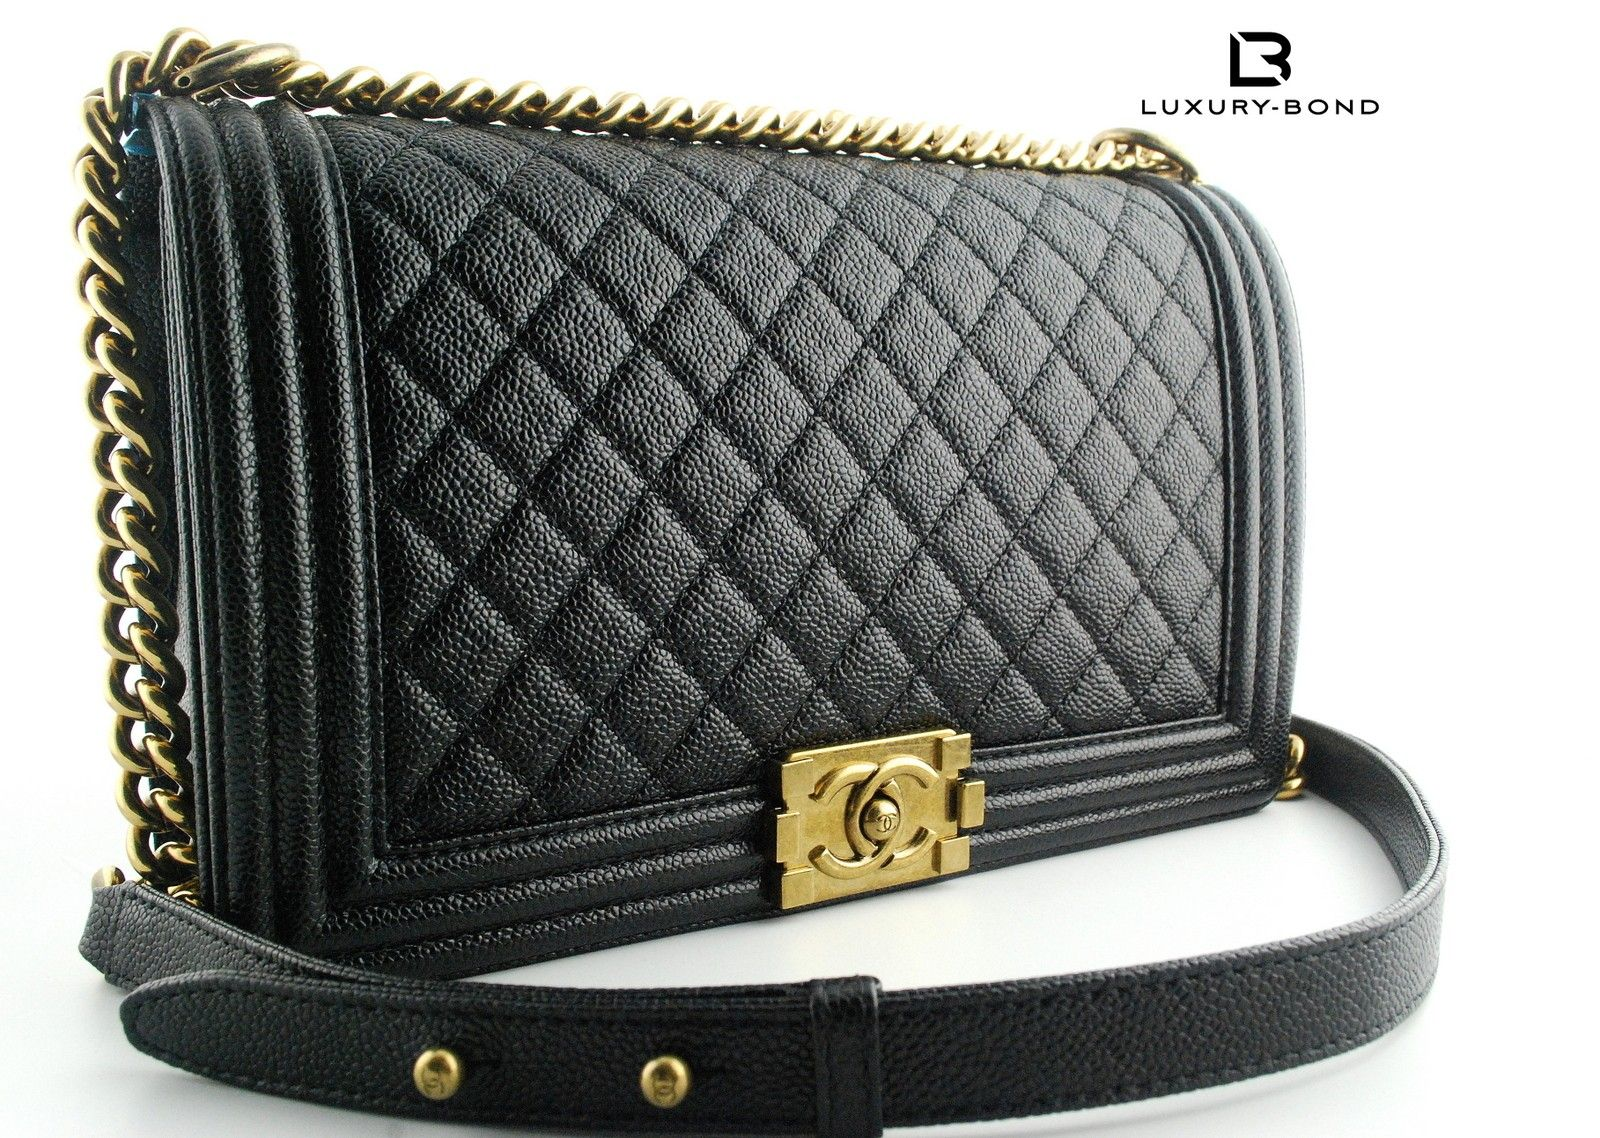 22c6be1146e Chanel Boy Black Caviar BRONZE GOLD HARDWARE New Medium Size